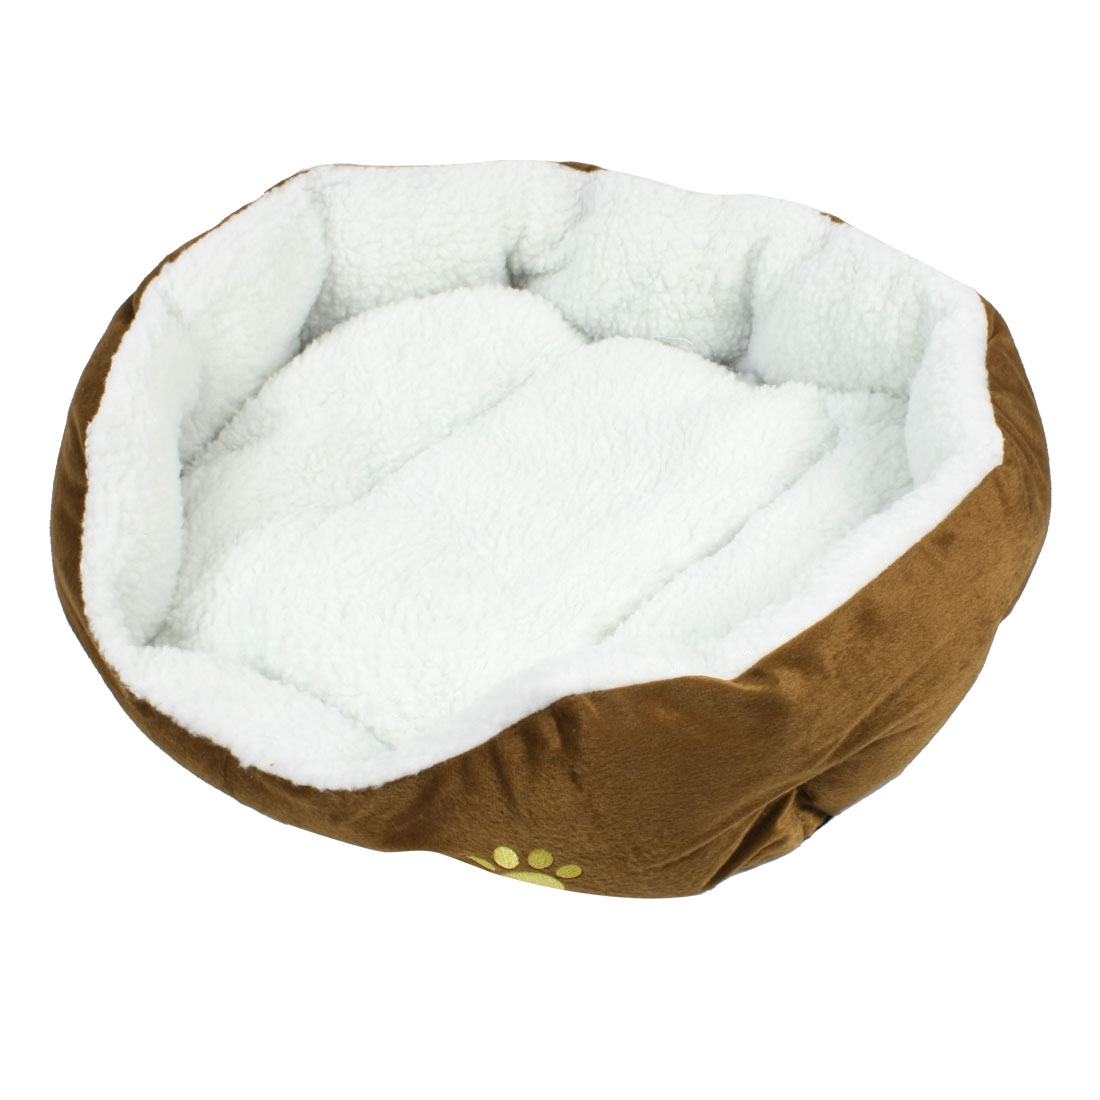 Indoor Warm Soft Fleece Pet Puppy Dog Cat Kitten Bed House Kennel 54x54cm